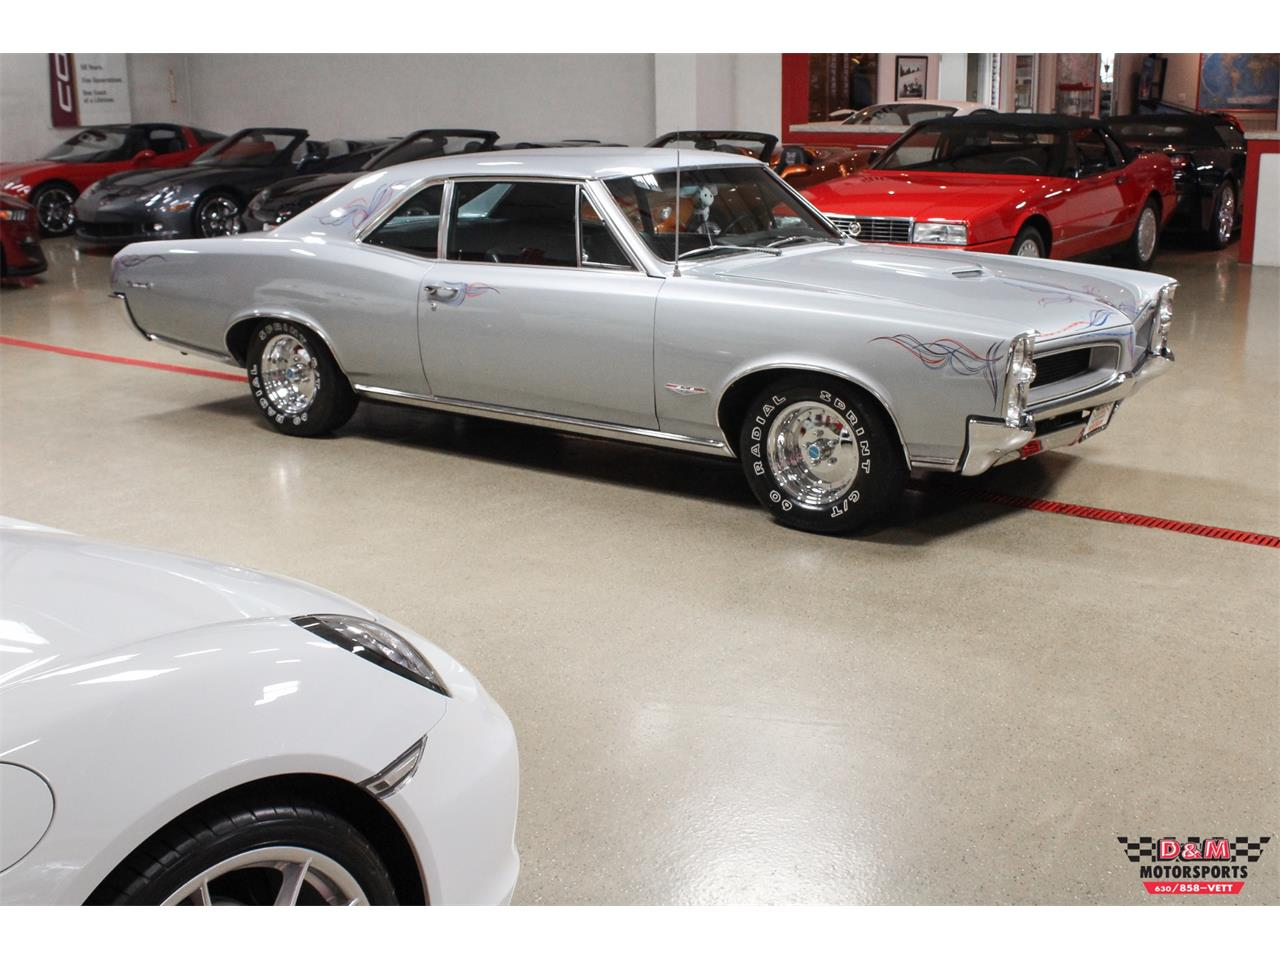 Large Picture of Classic '66 Pontiac GTO located in Illinois Offered by D & M Motorsports - O7FS